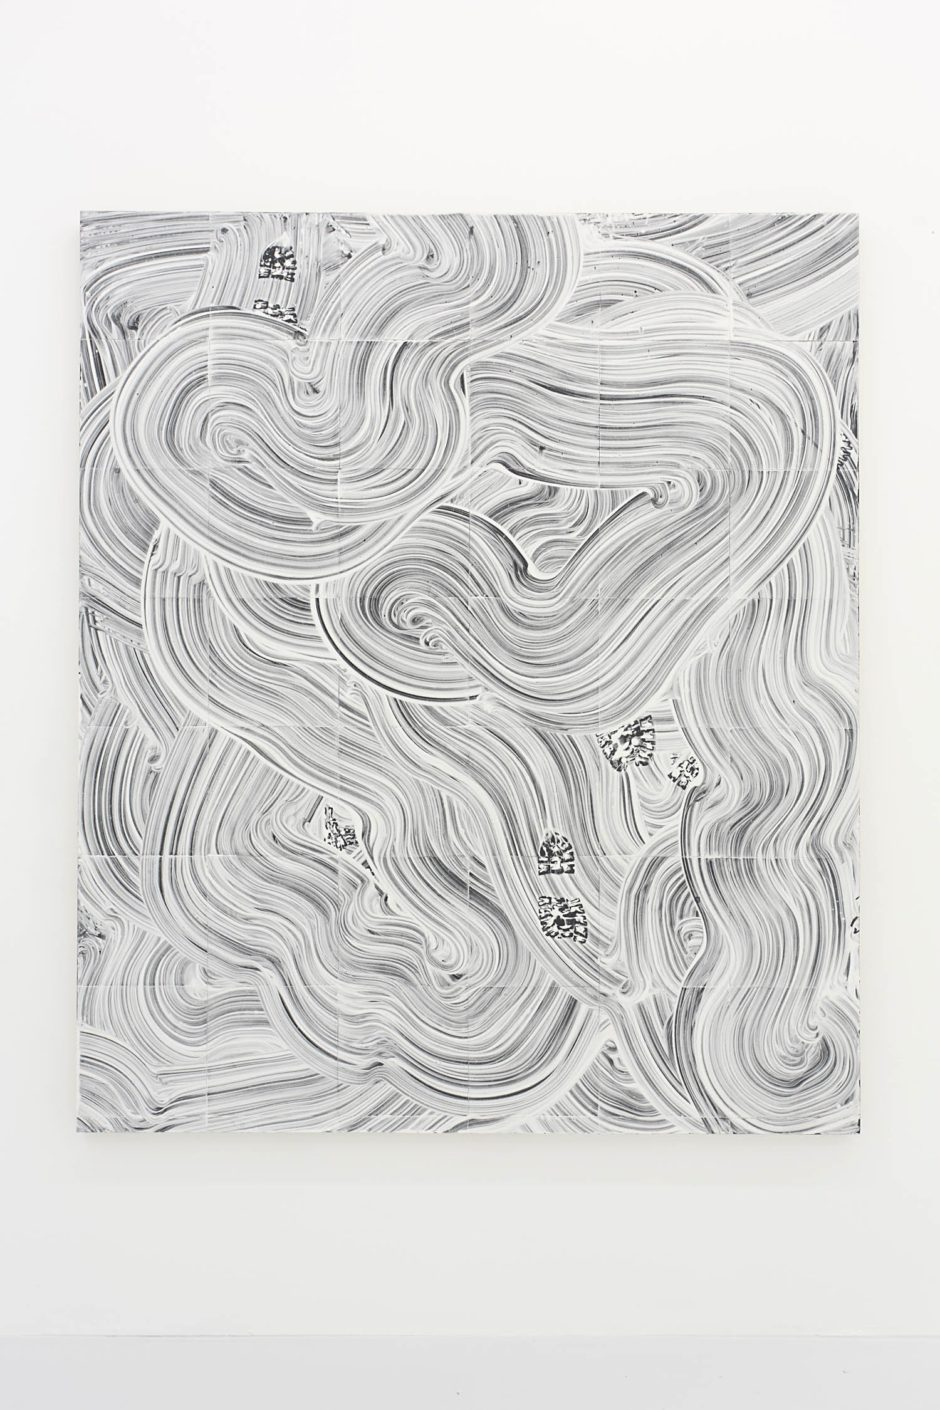 """Lost In Space I"", 2015, fiber glass reinforced plaster on linoleum mounted on panel, 84 x 72 x 2.15 inches, 213.4 x 182.9 x 5.5 cm"